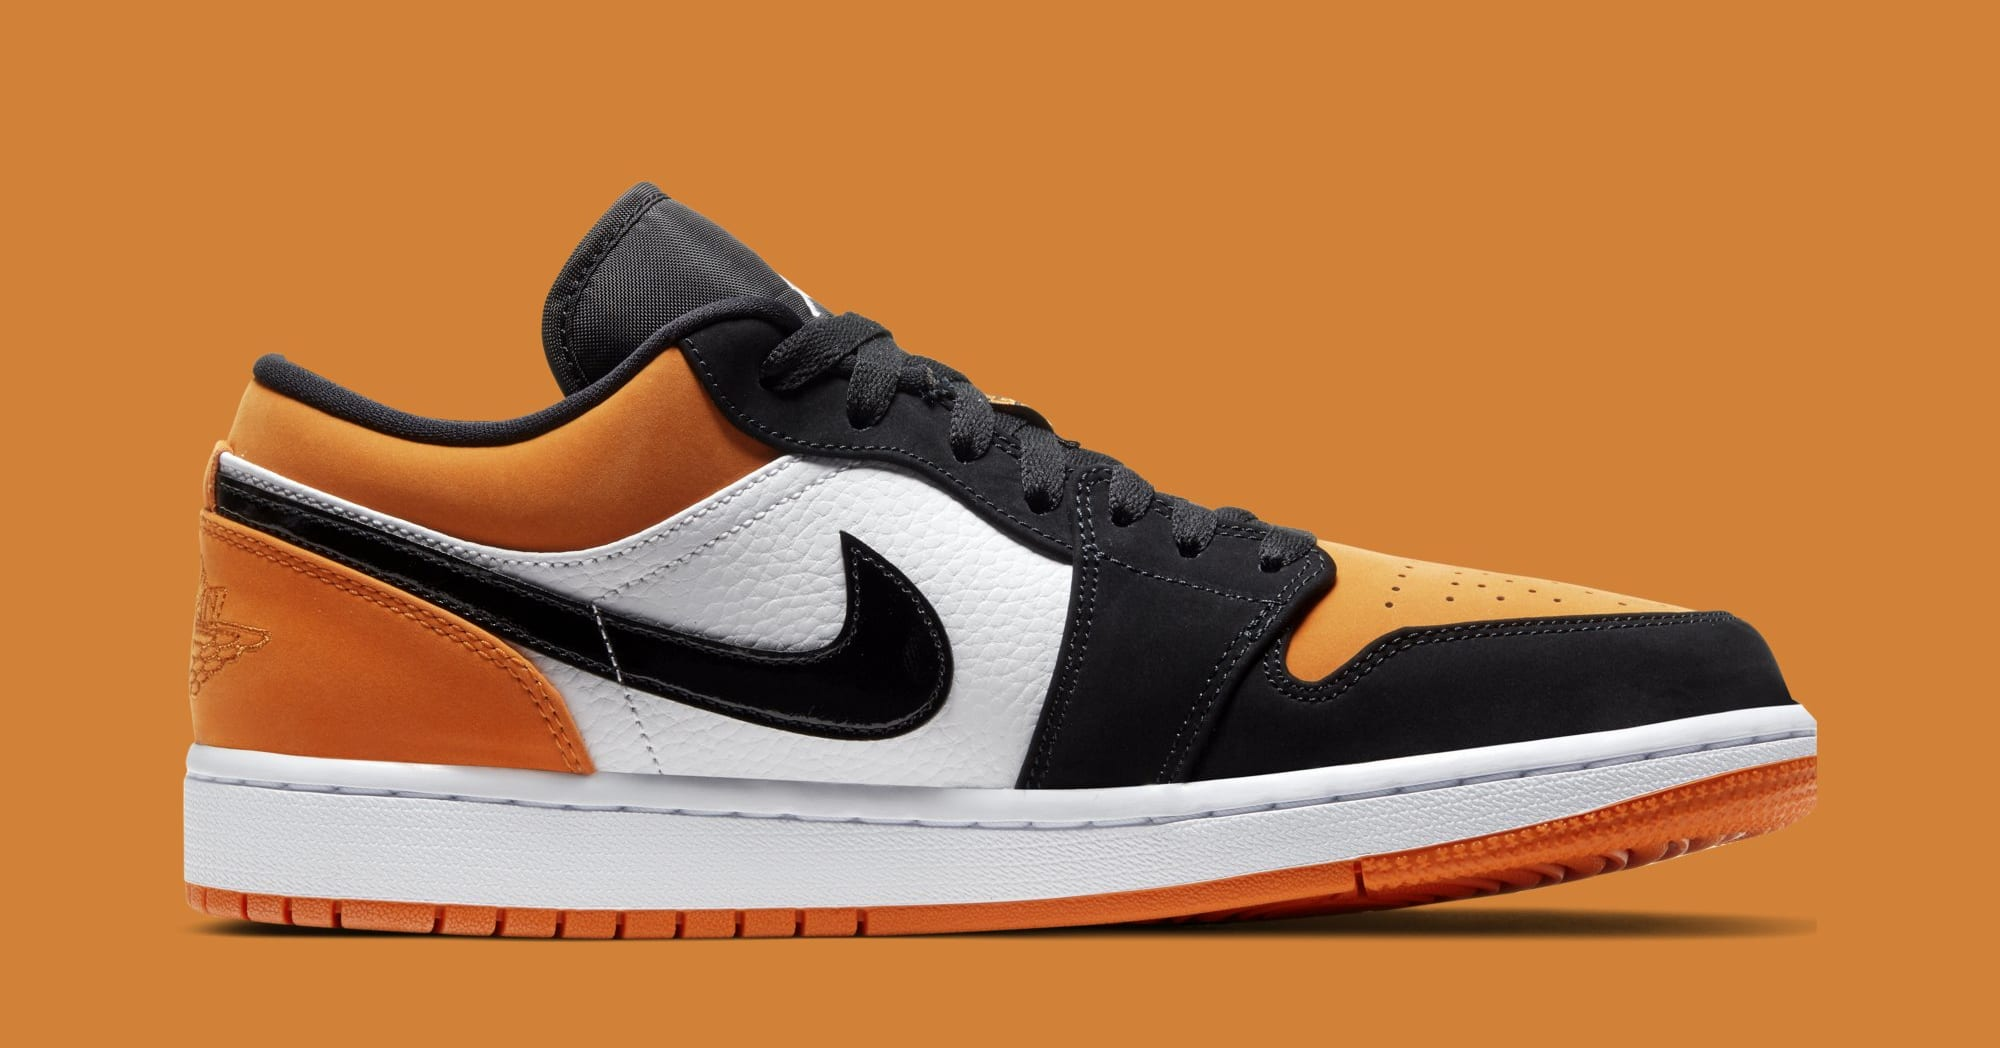 release date 4c626 c2c14 Air Jordan 1 Low 'Shattered Backboard' Black/White-Starfish ...